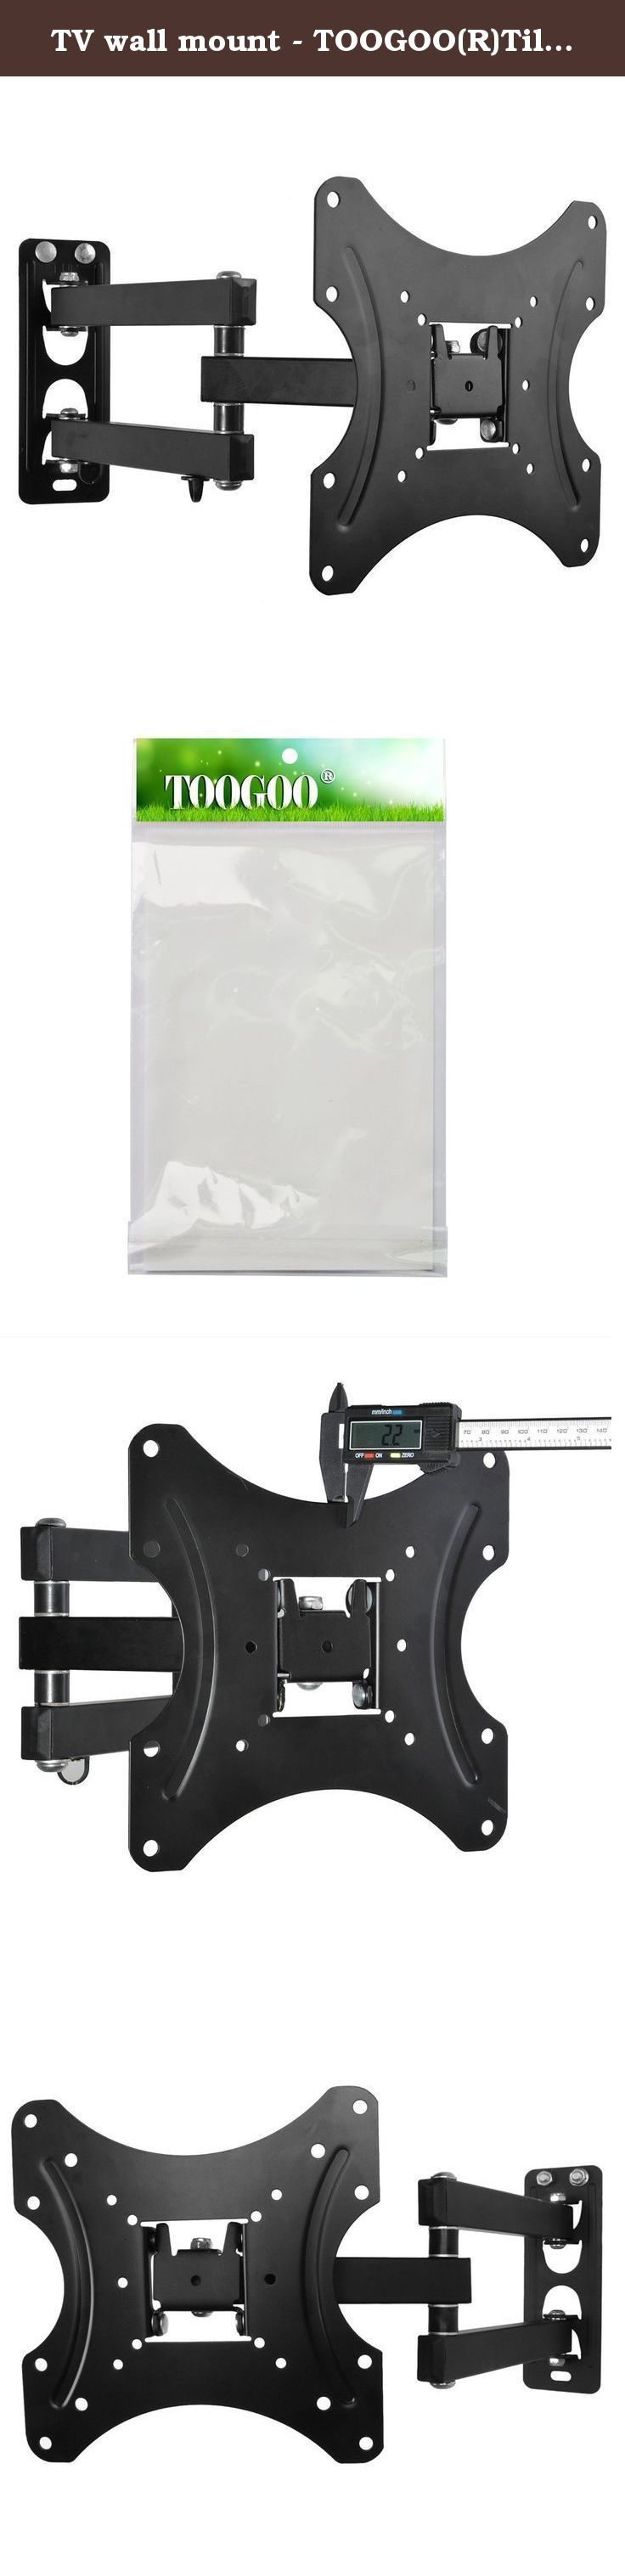 TV wall mount - TOOGOO(R)Tilt Swivel Plasma LCD LED TV Wall Bracket Mount 10 26 30 32 37 38 40 42inch. * TOOGOO is a registered trademark. ONLY Authorized seller of TOOGOO can sell under TOOGOO listings. Our products will enhance your experience to unparalleled inspiration. TOOGOO(R)Tilt Swivel Plasma LCD LED TV Wall Bracket Mount 10 26 30 32 37 38 40 42inch Mount Dimensions(W*H): 220mm x 220mm Vesa Size: 200x200mm, 200x100mm, 150x150mm,100x100mm, 75x75mm Fitting Hole Distance(W*H)…